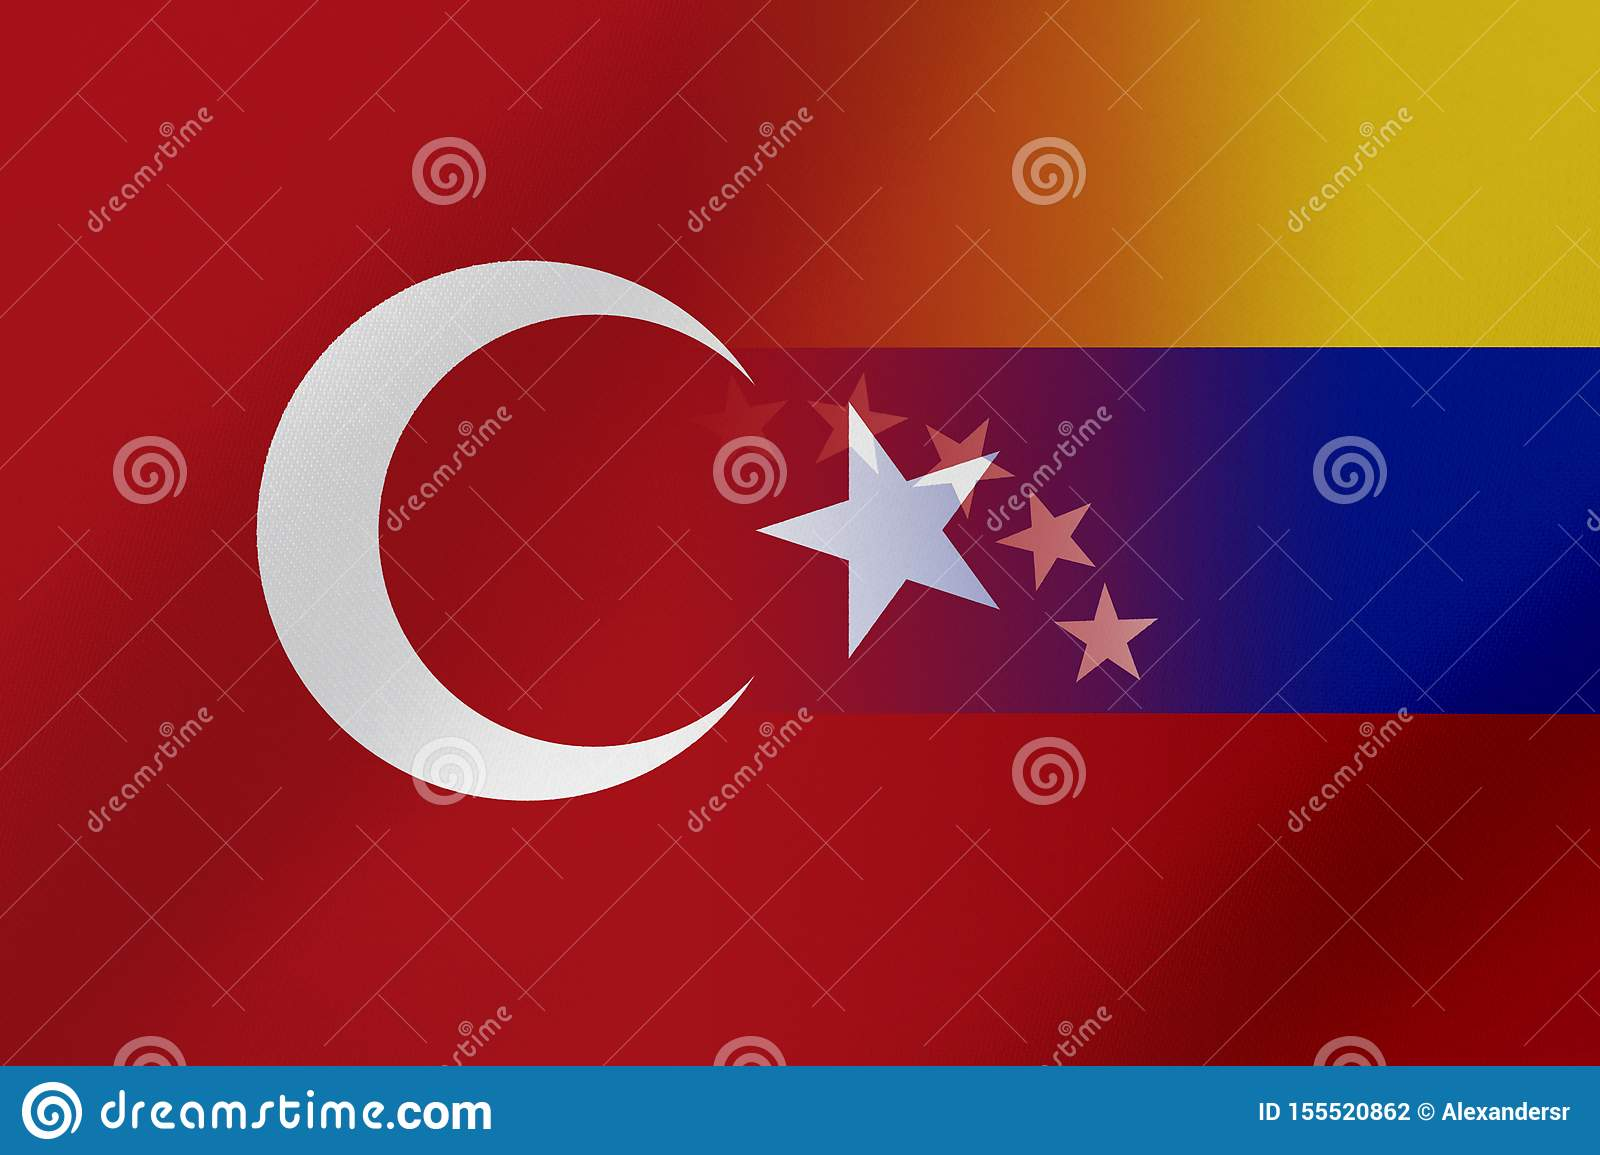 Flags Of Venezuela And Turkey That Come Together Showing A ...